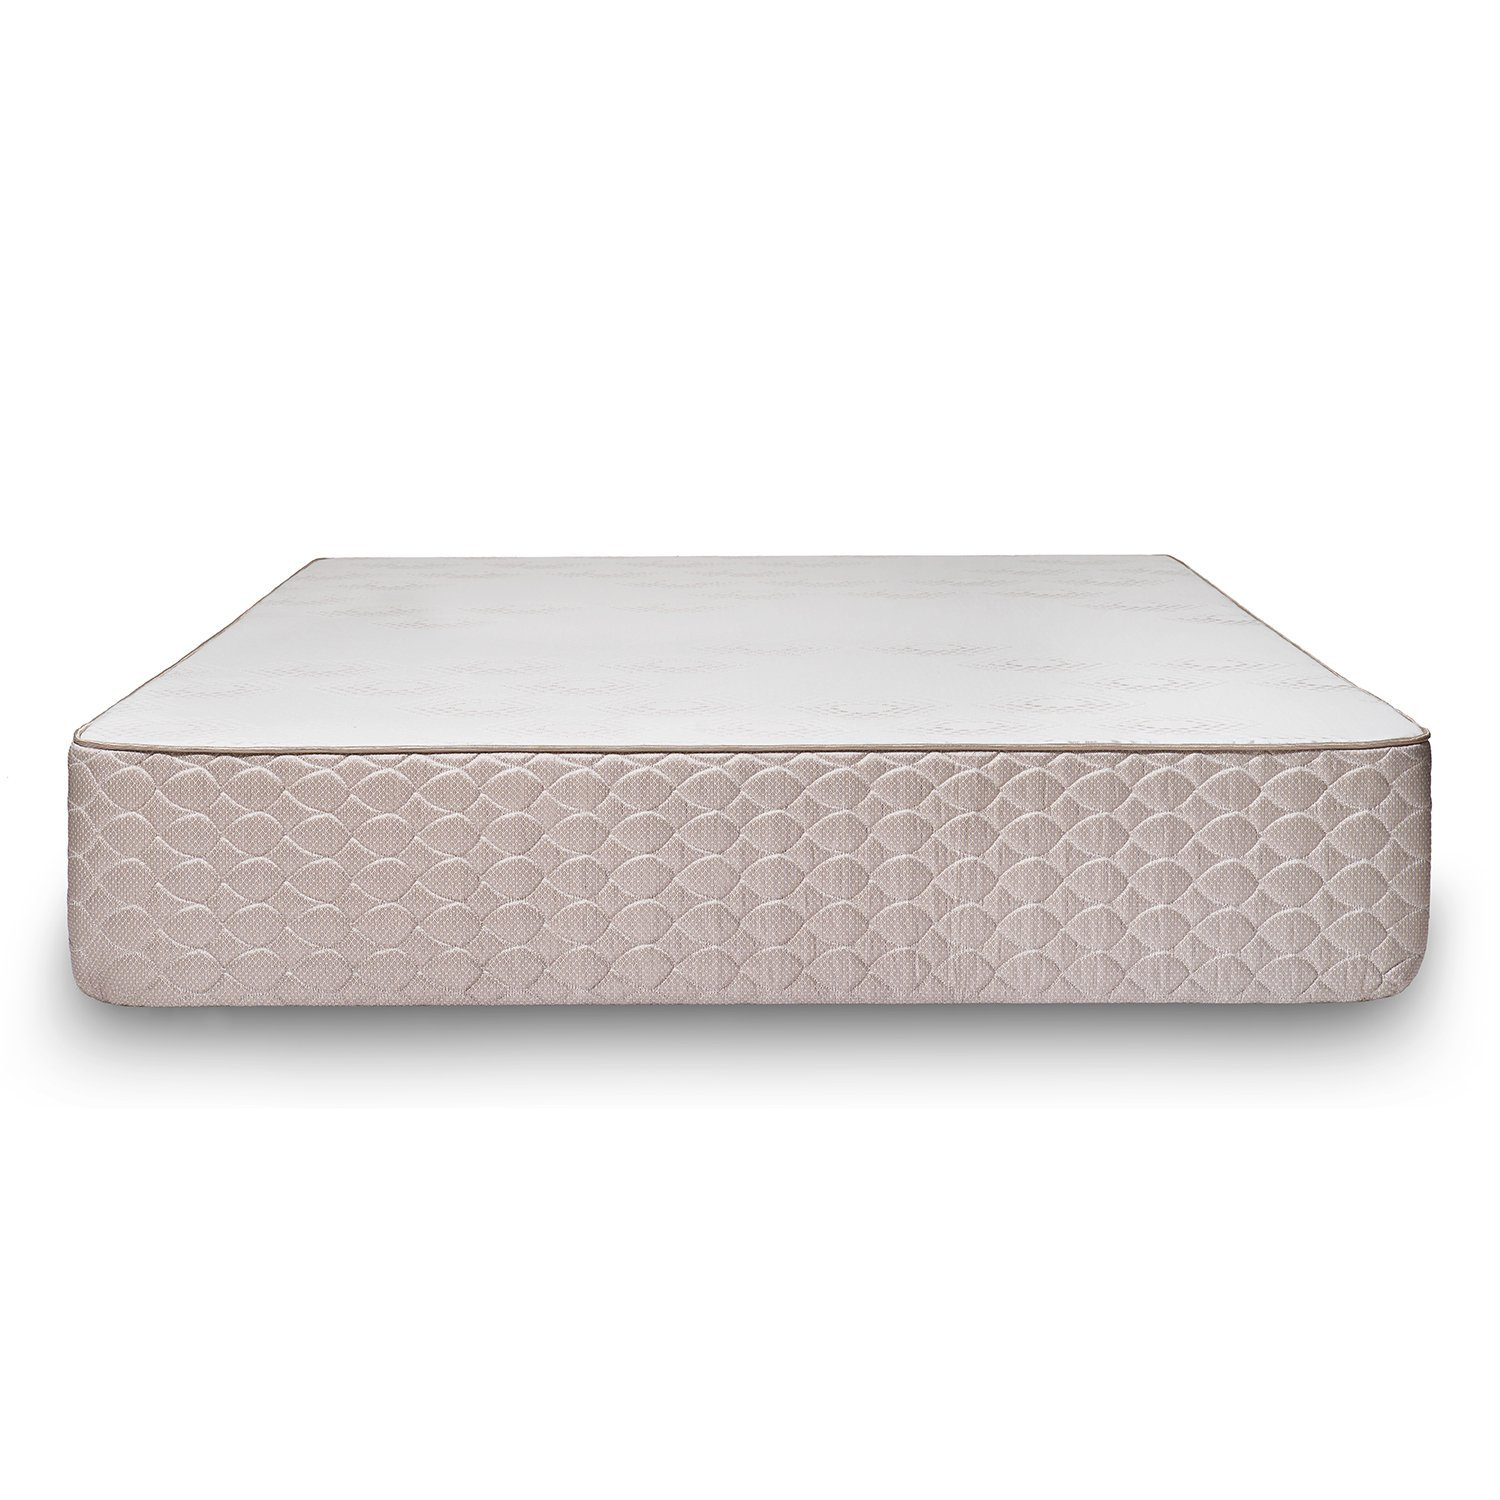 Best latex mattresses reviewed top 10 comparison and buyer guide Memory foam mattress buy